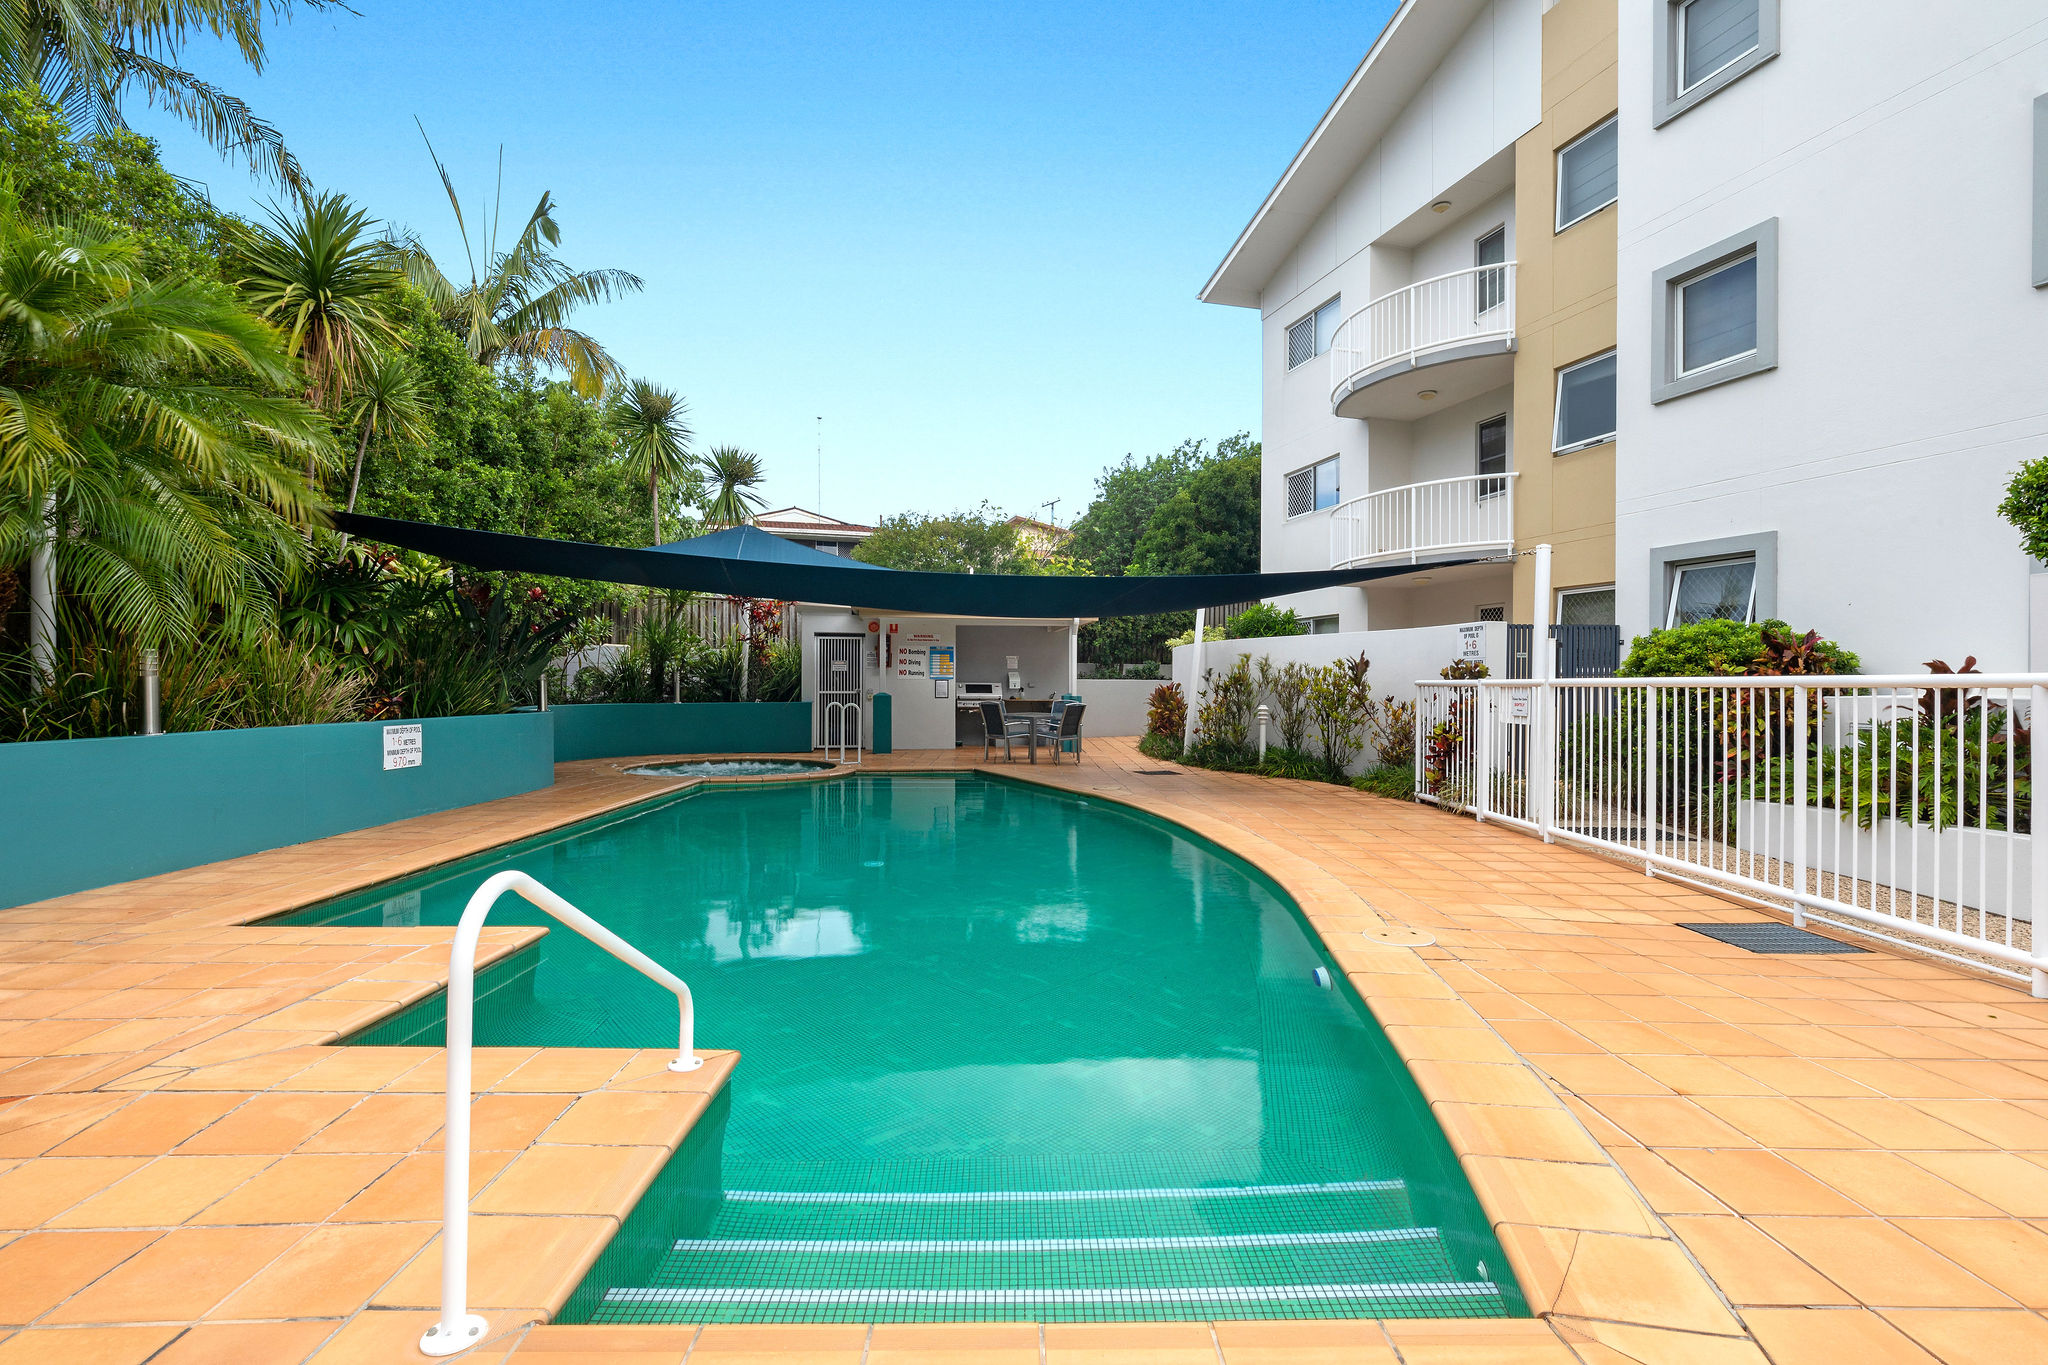 Apartment 3BR Coolum Beach  photo 24019098